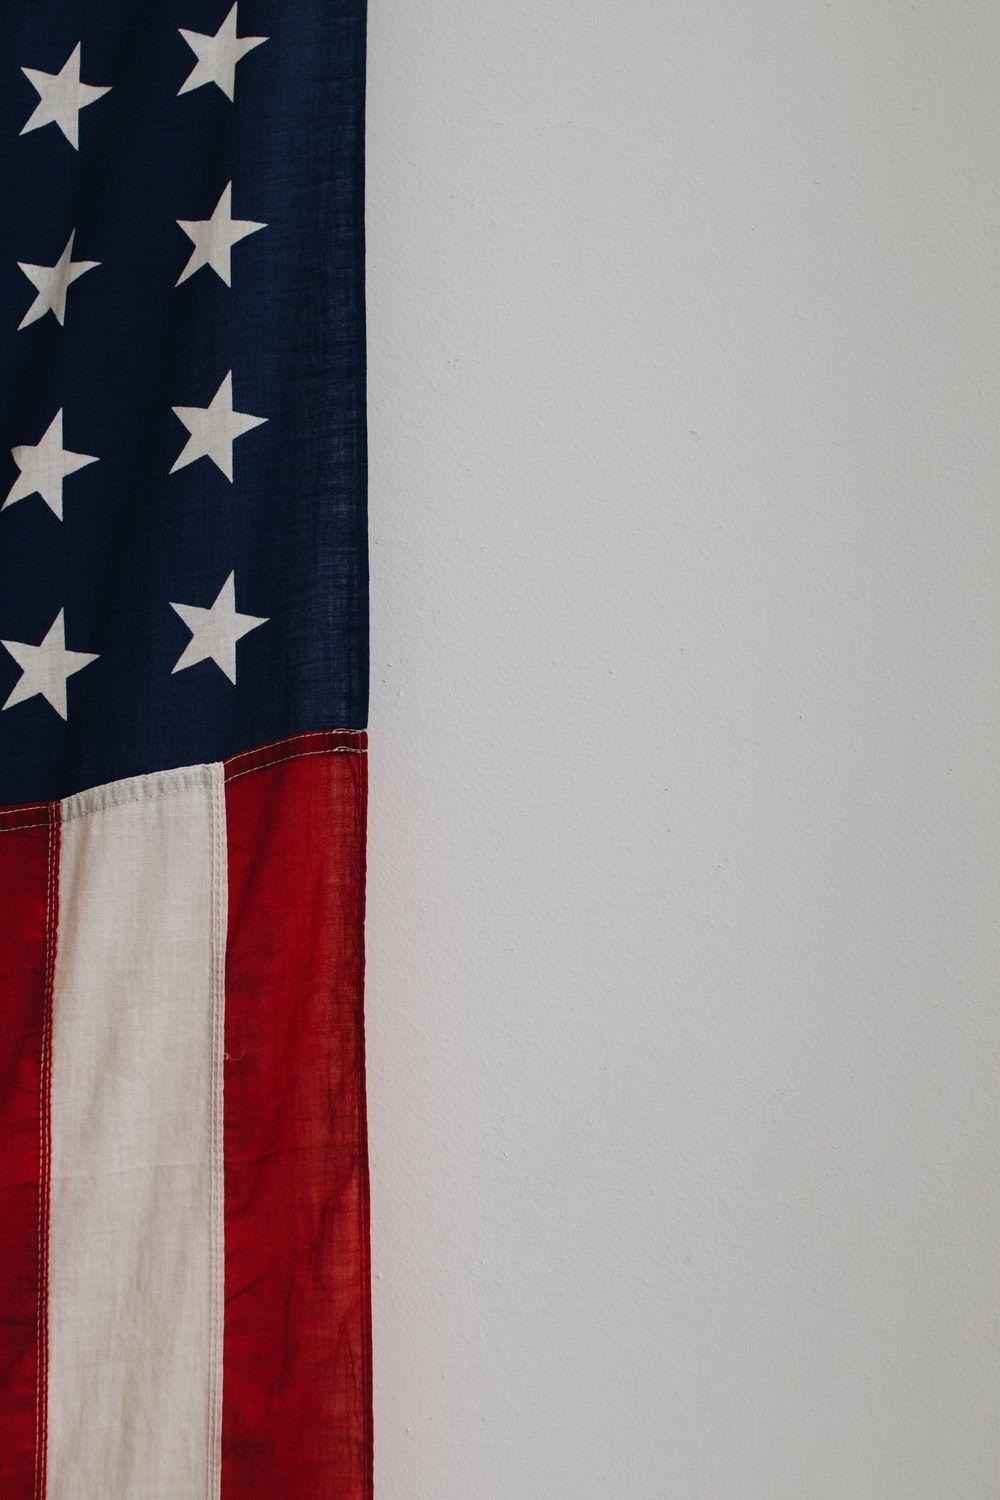 states flags wallpapers wallpaper cave